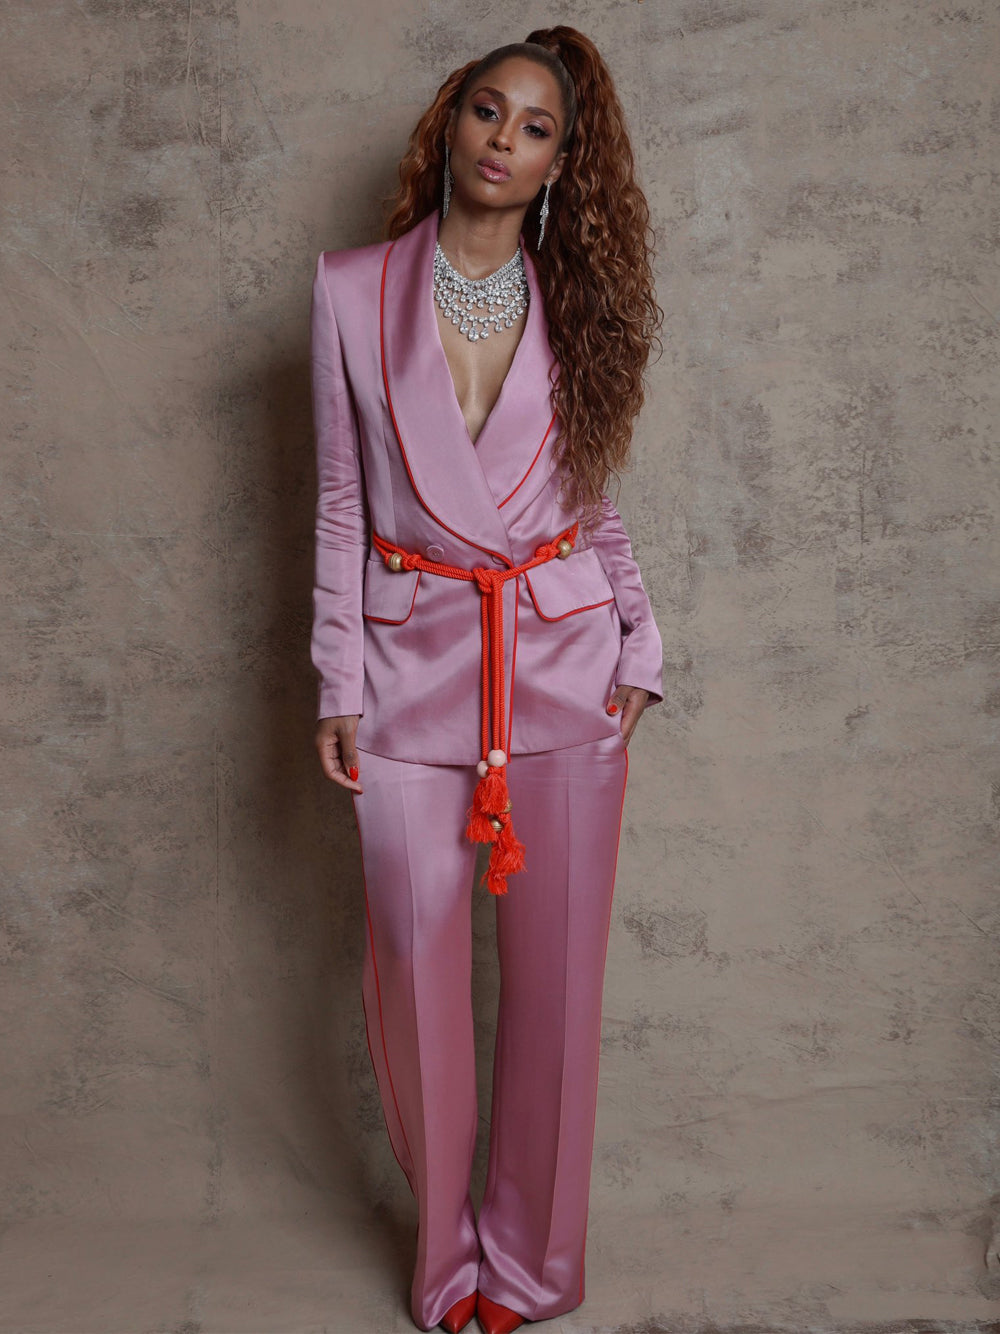 DALIDA Double-breasted Satin Blazer + Pants Matching Set in Pink